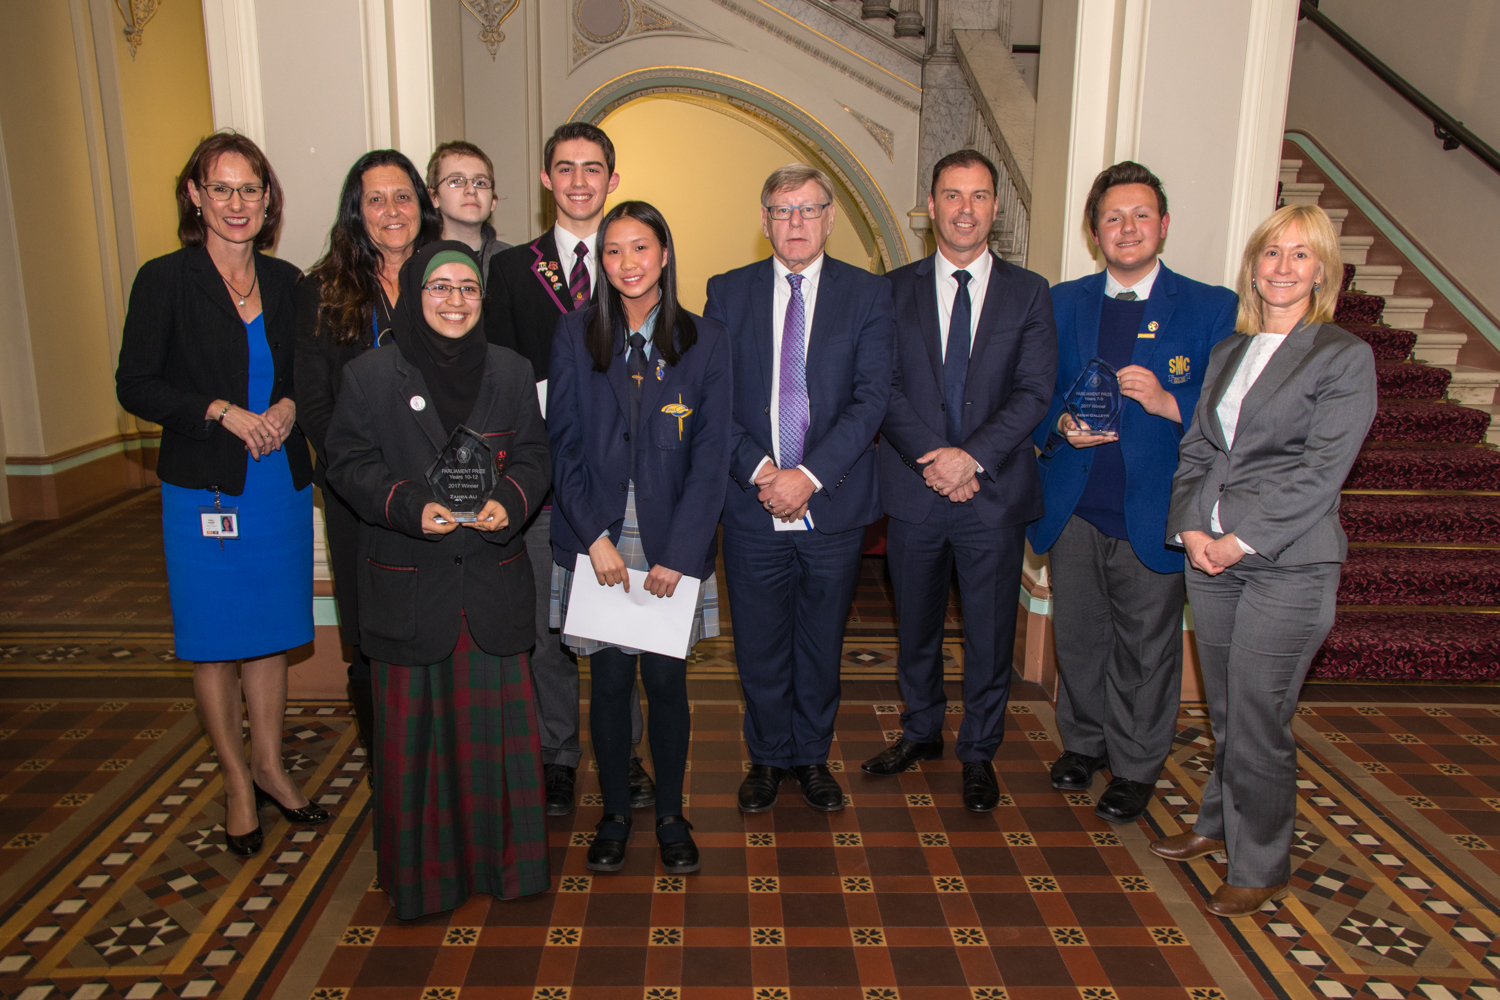 Parliament Prize Winners 2017